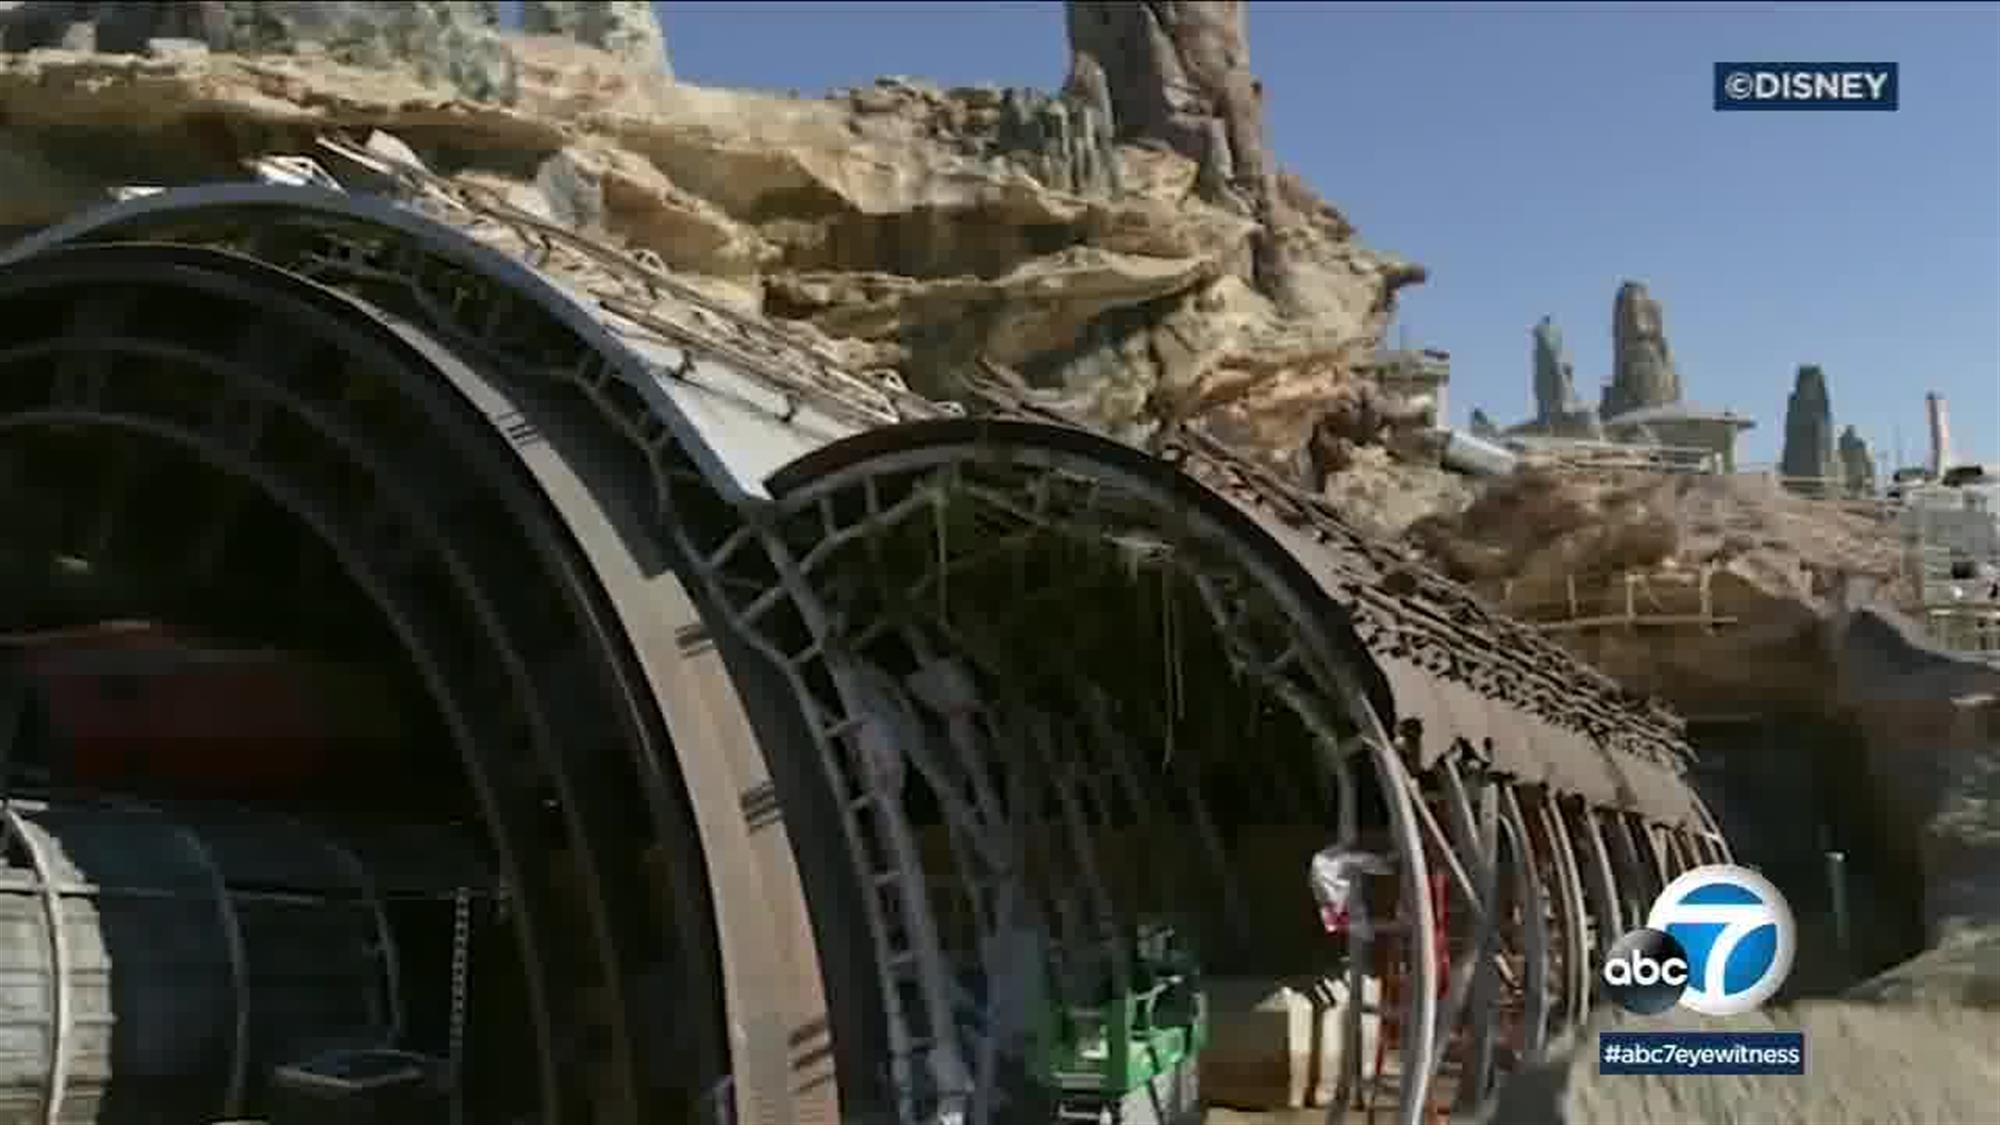 What looks like a giant, rotting engine from a Star Destroyer or other large capital ship disguises an access point to an abandoned Rebel base on Batuu, and what will eventually serve as the entrance to the Star Wars: Rise of the Resistance attraction.